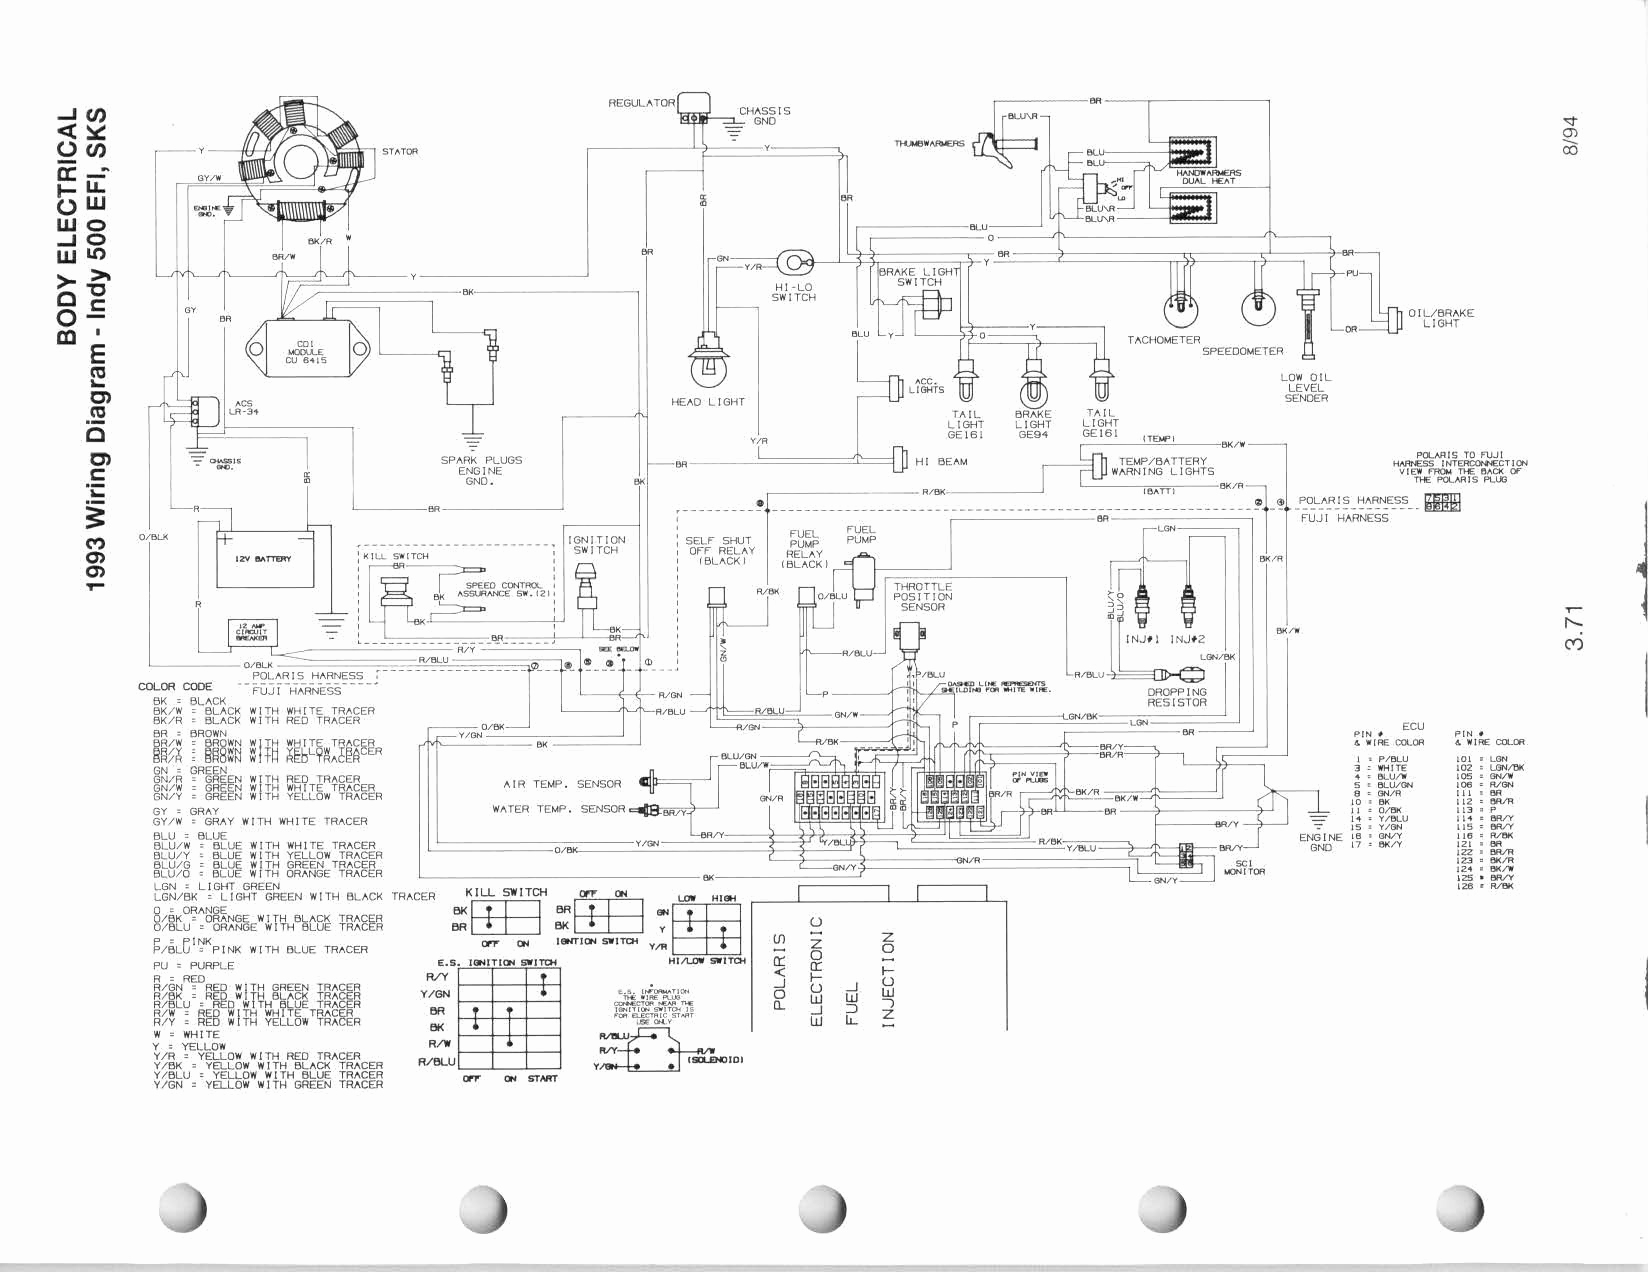 polaris ranger wiring diagram | free wiring diagram 2011 polaris ranger xp wiring diagram polaris sportsman xp wiring diagram